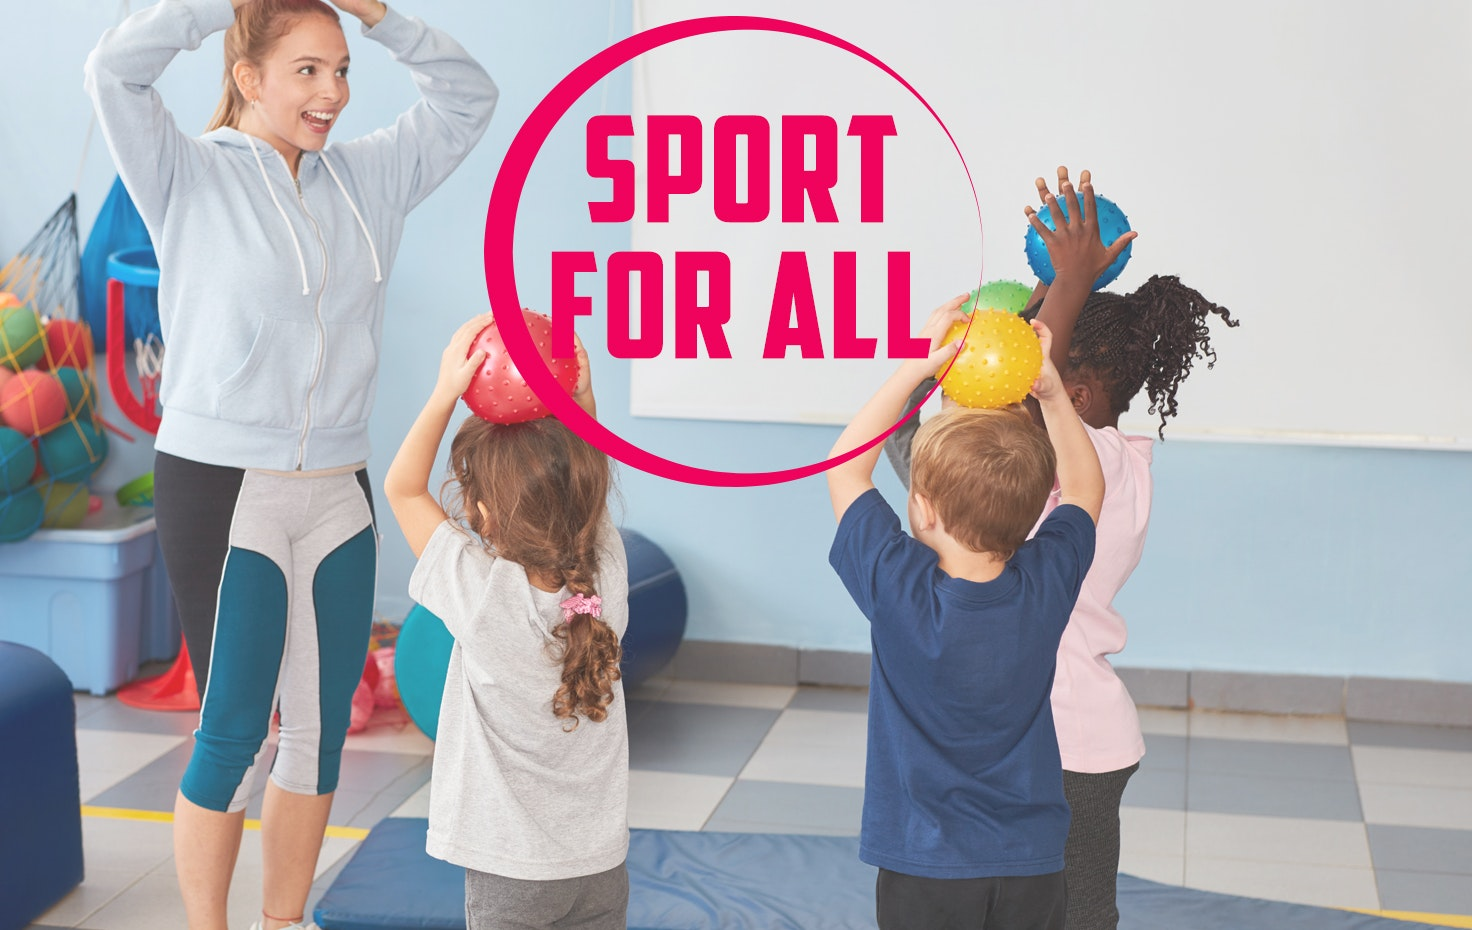 Sport for all